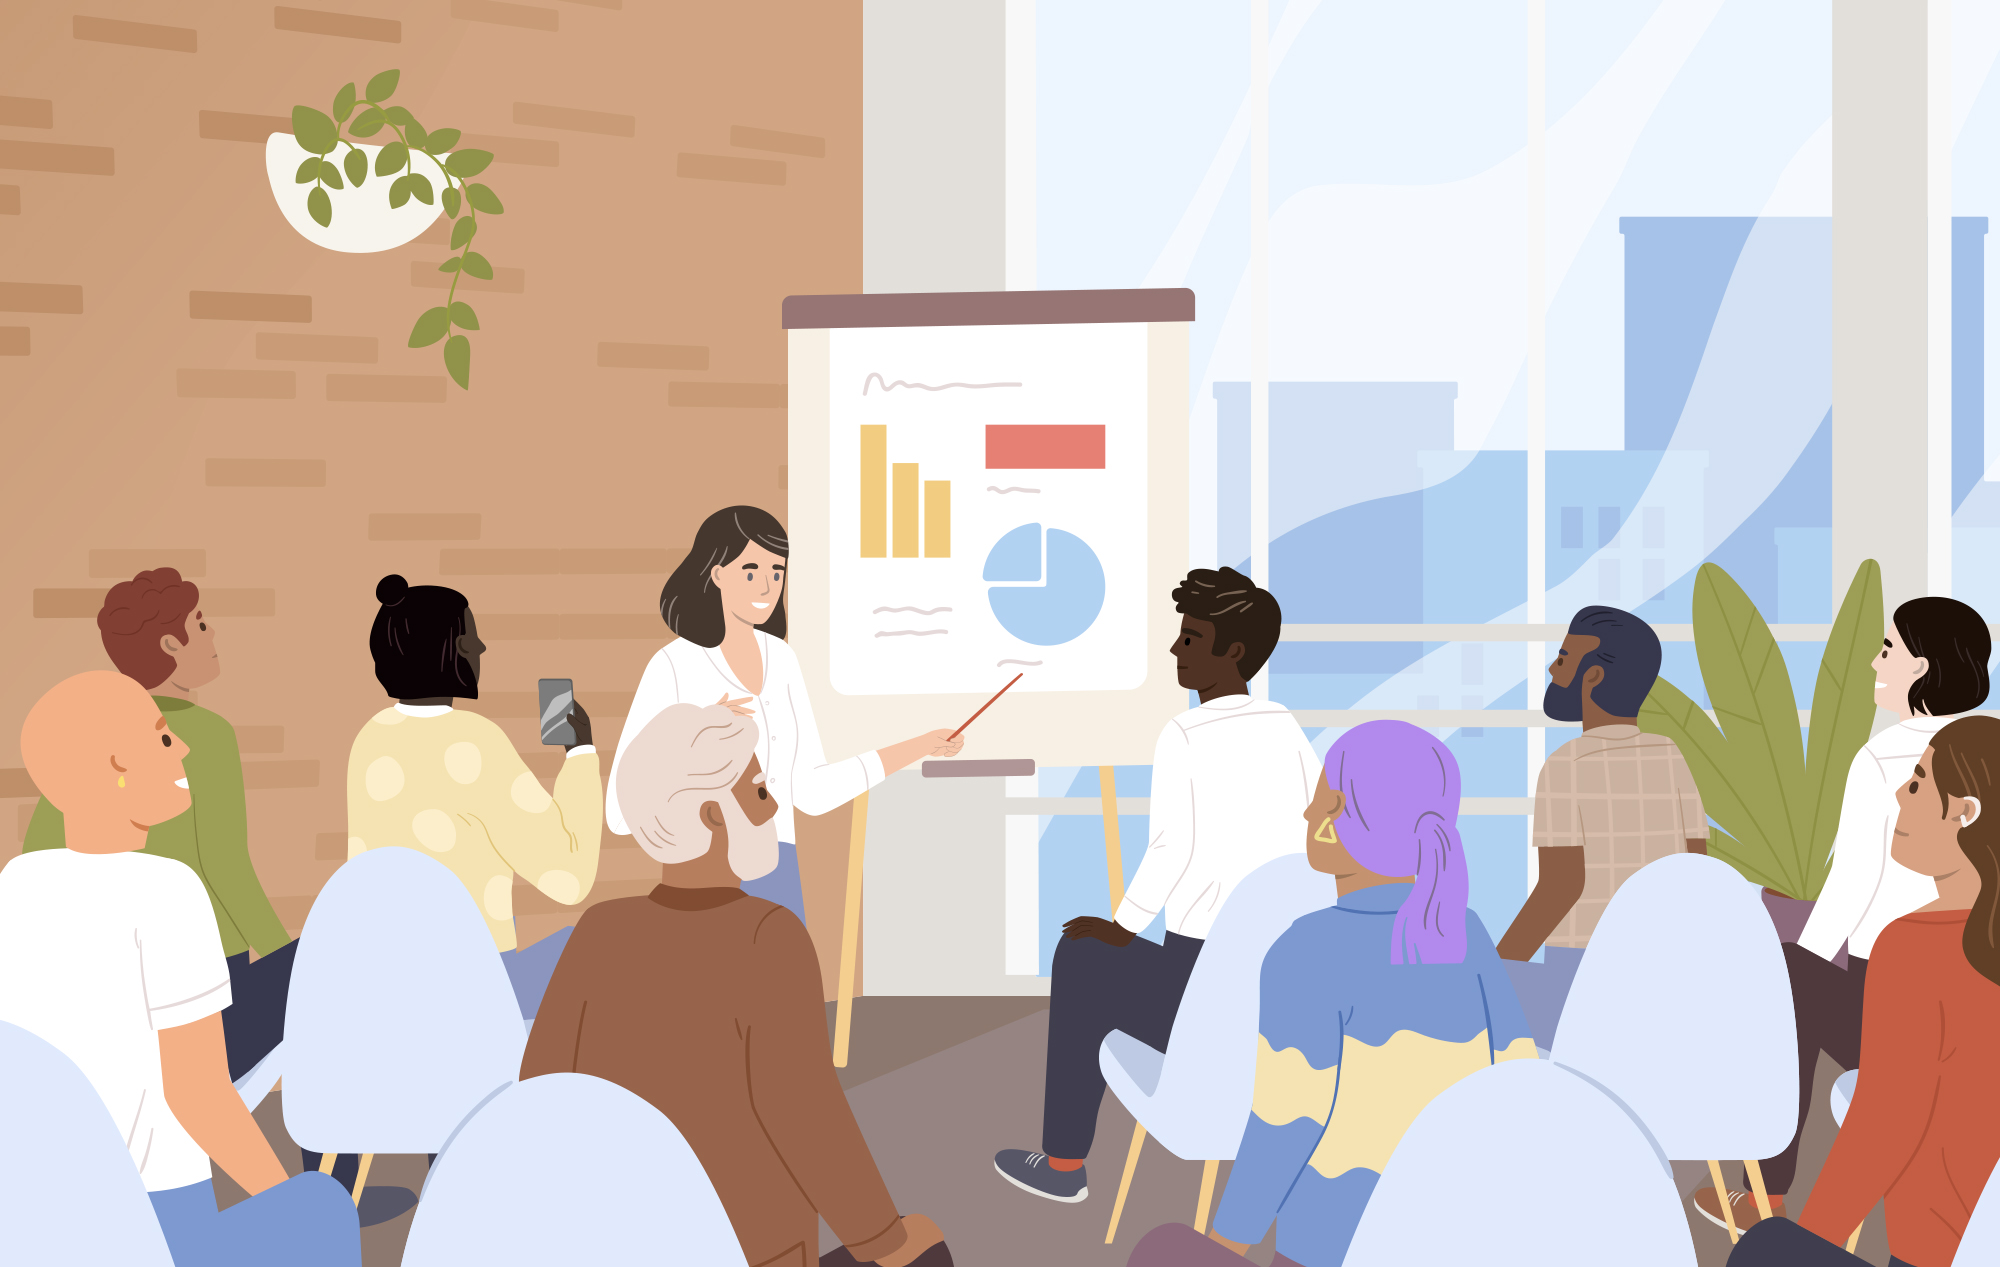 A group of people sitting in a room watching a presentation—the presenter stands at an easel and points to data.